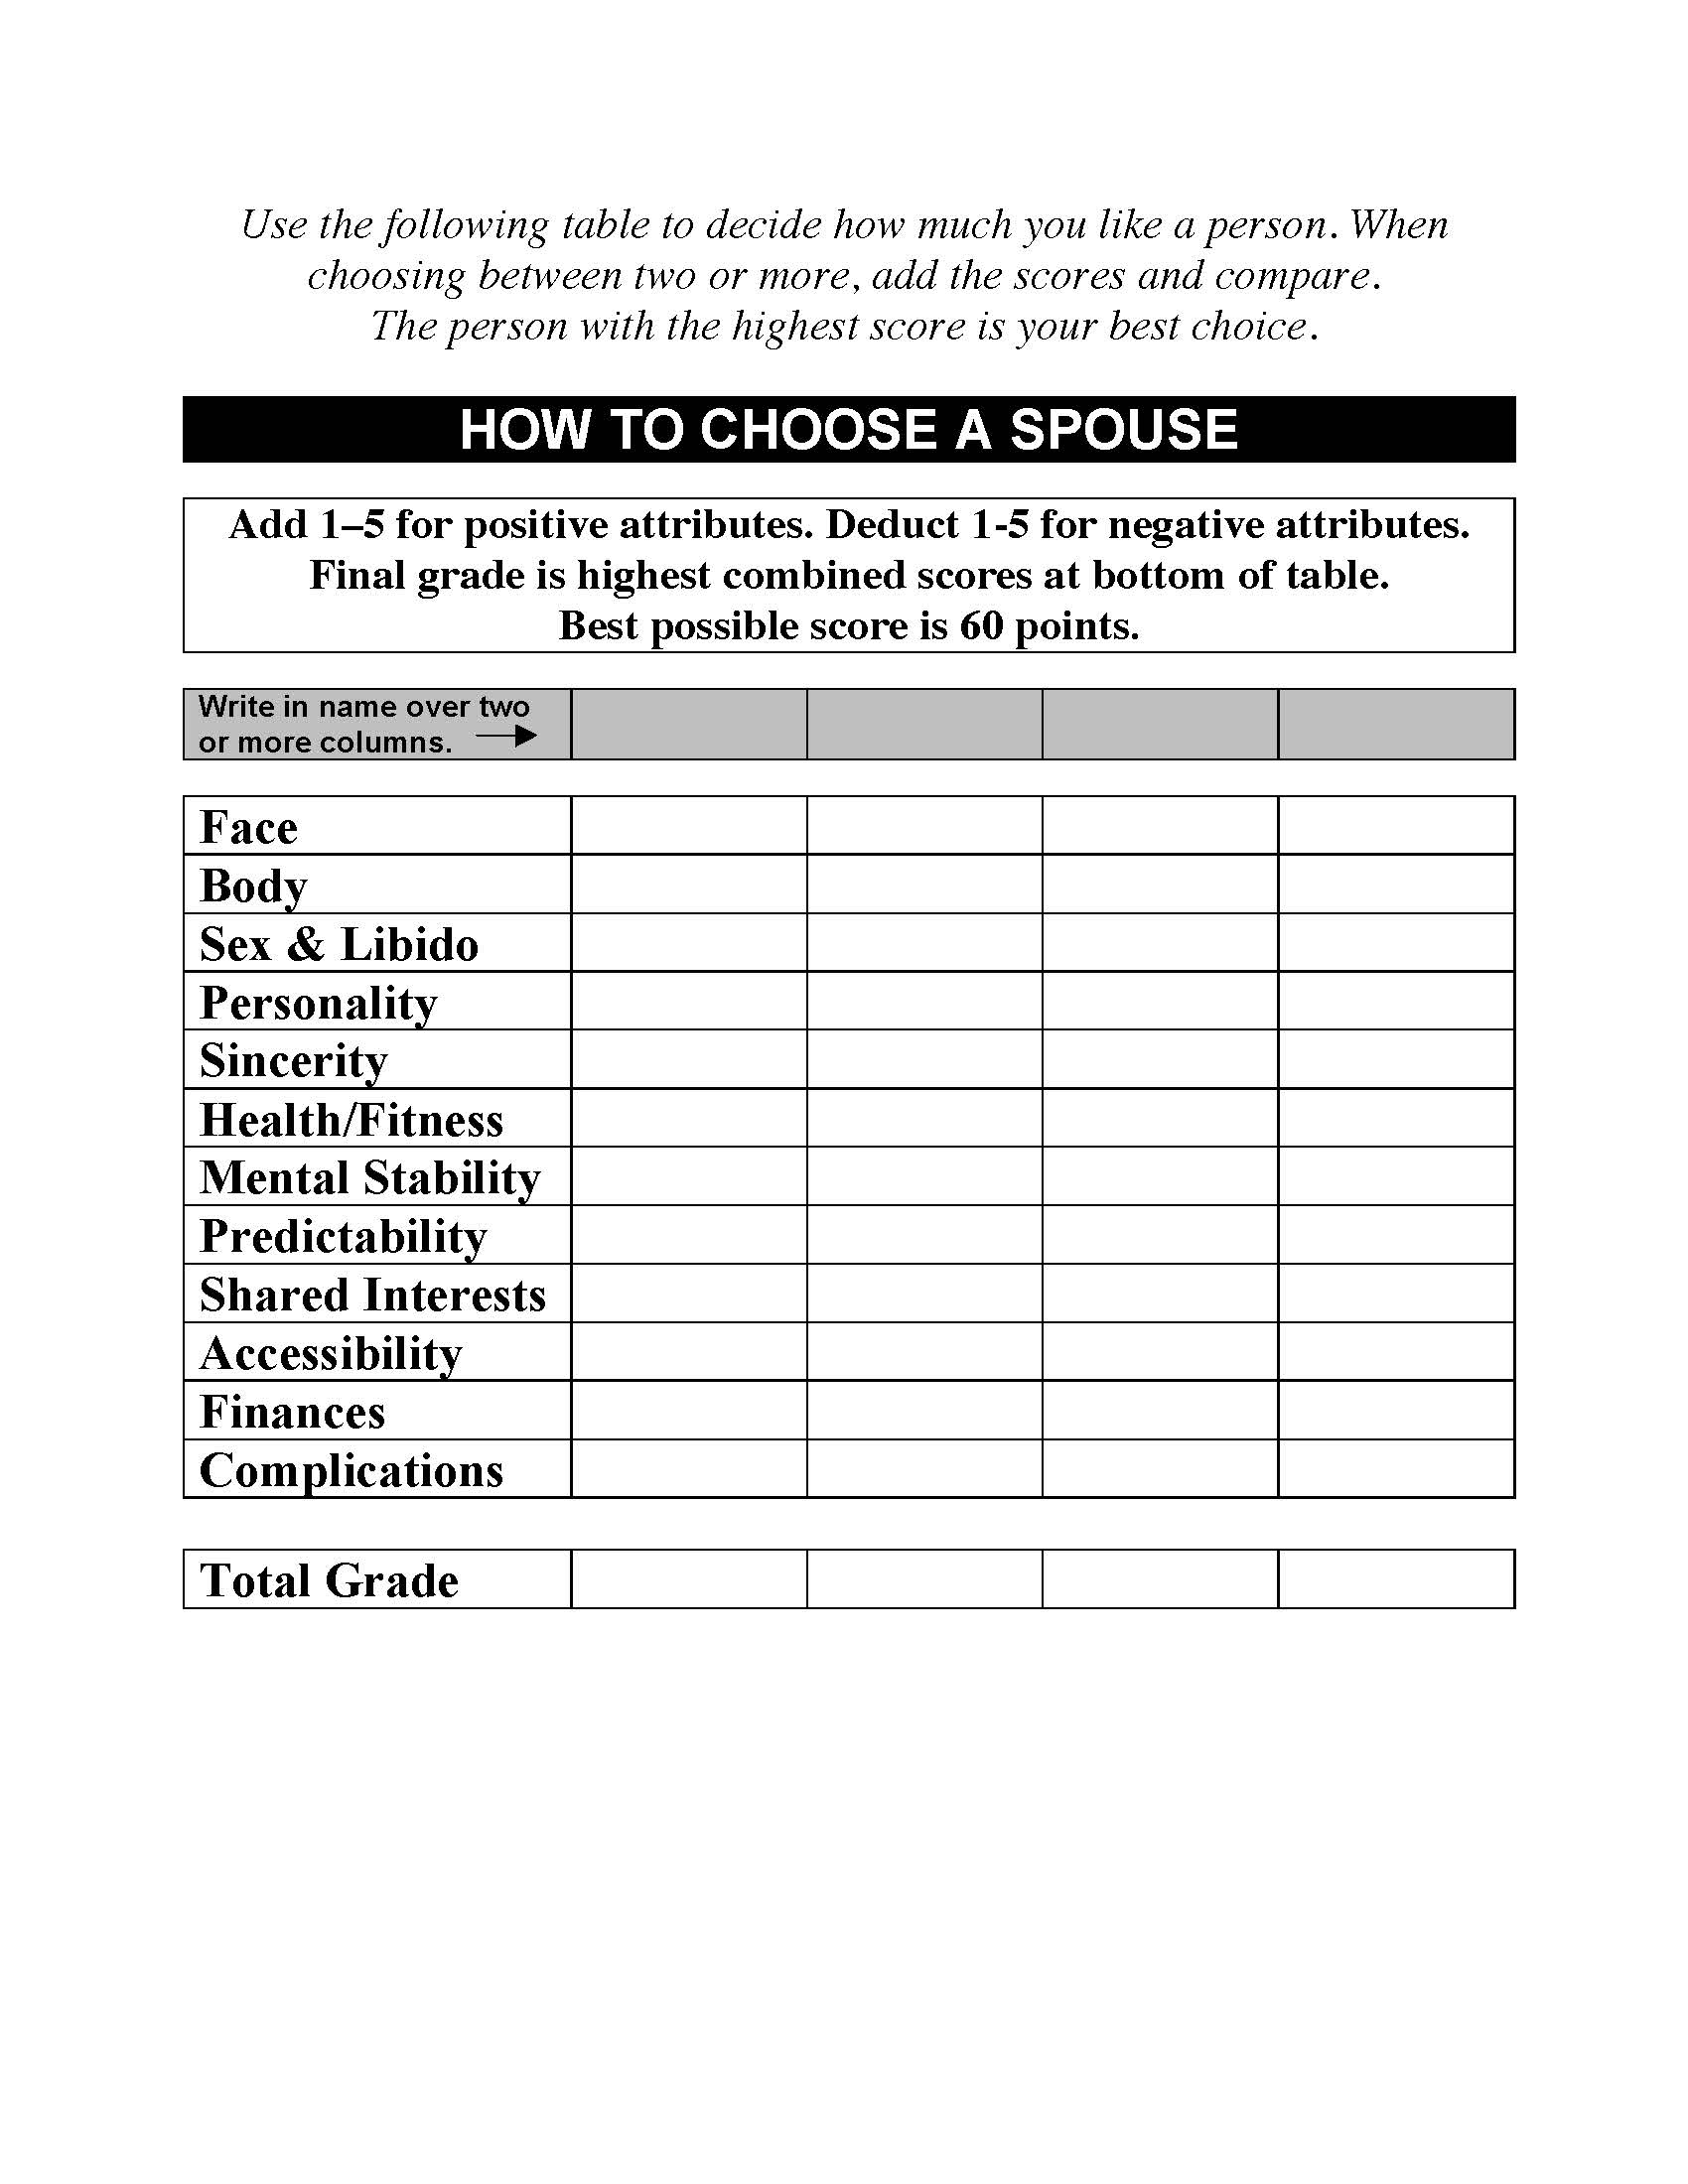 HOW TO CHOOSE A SPOUSE